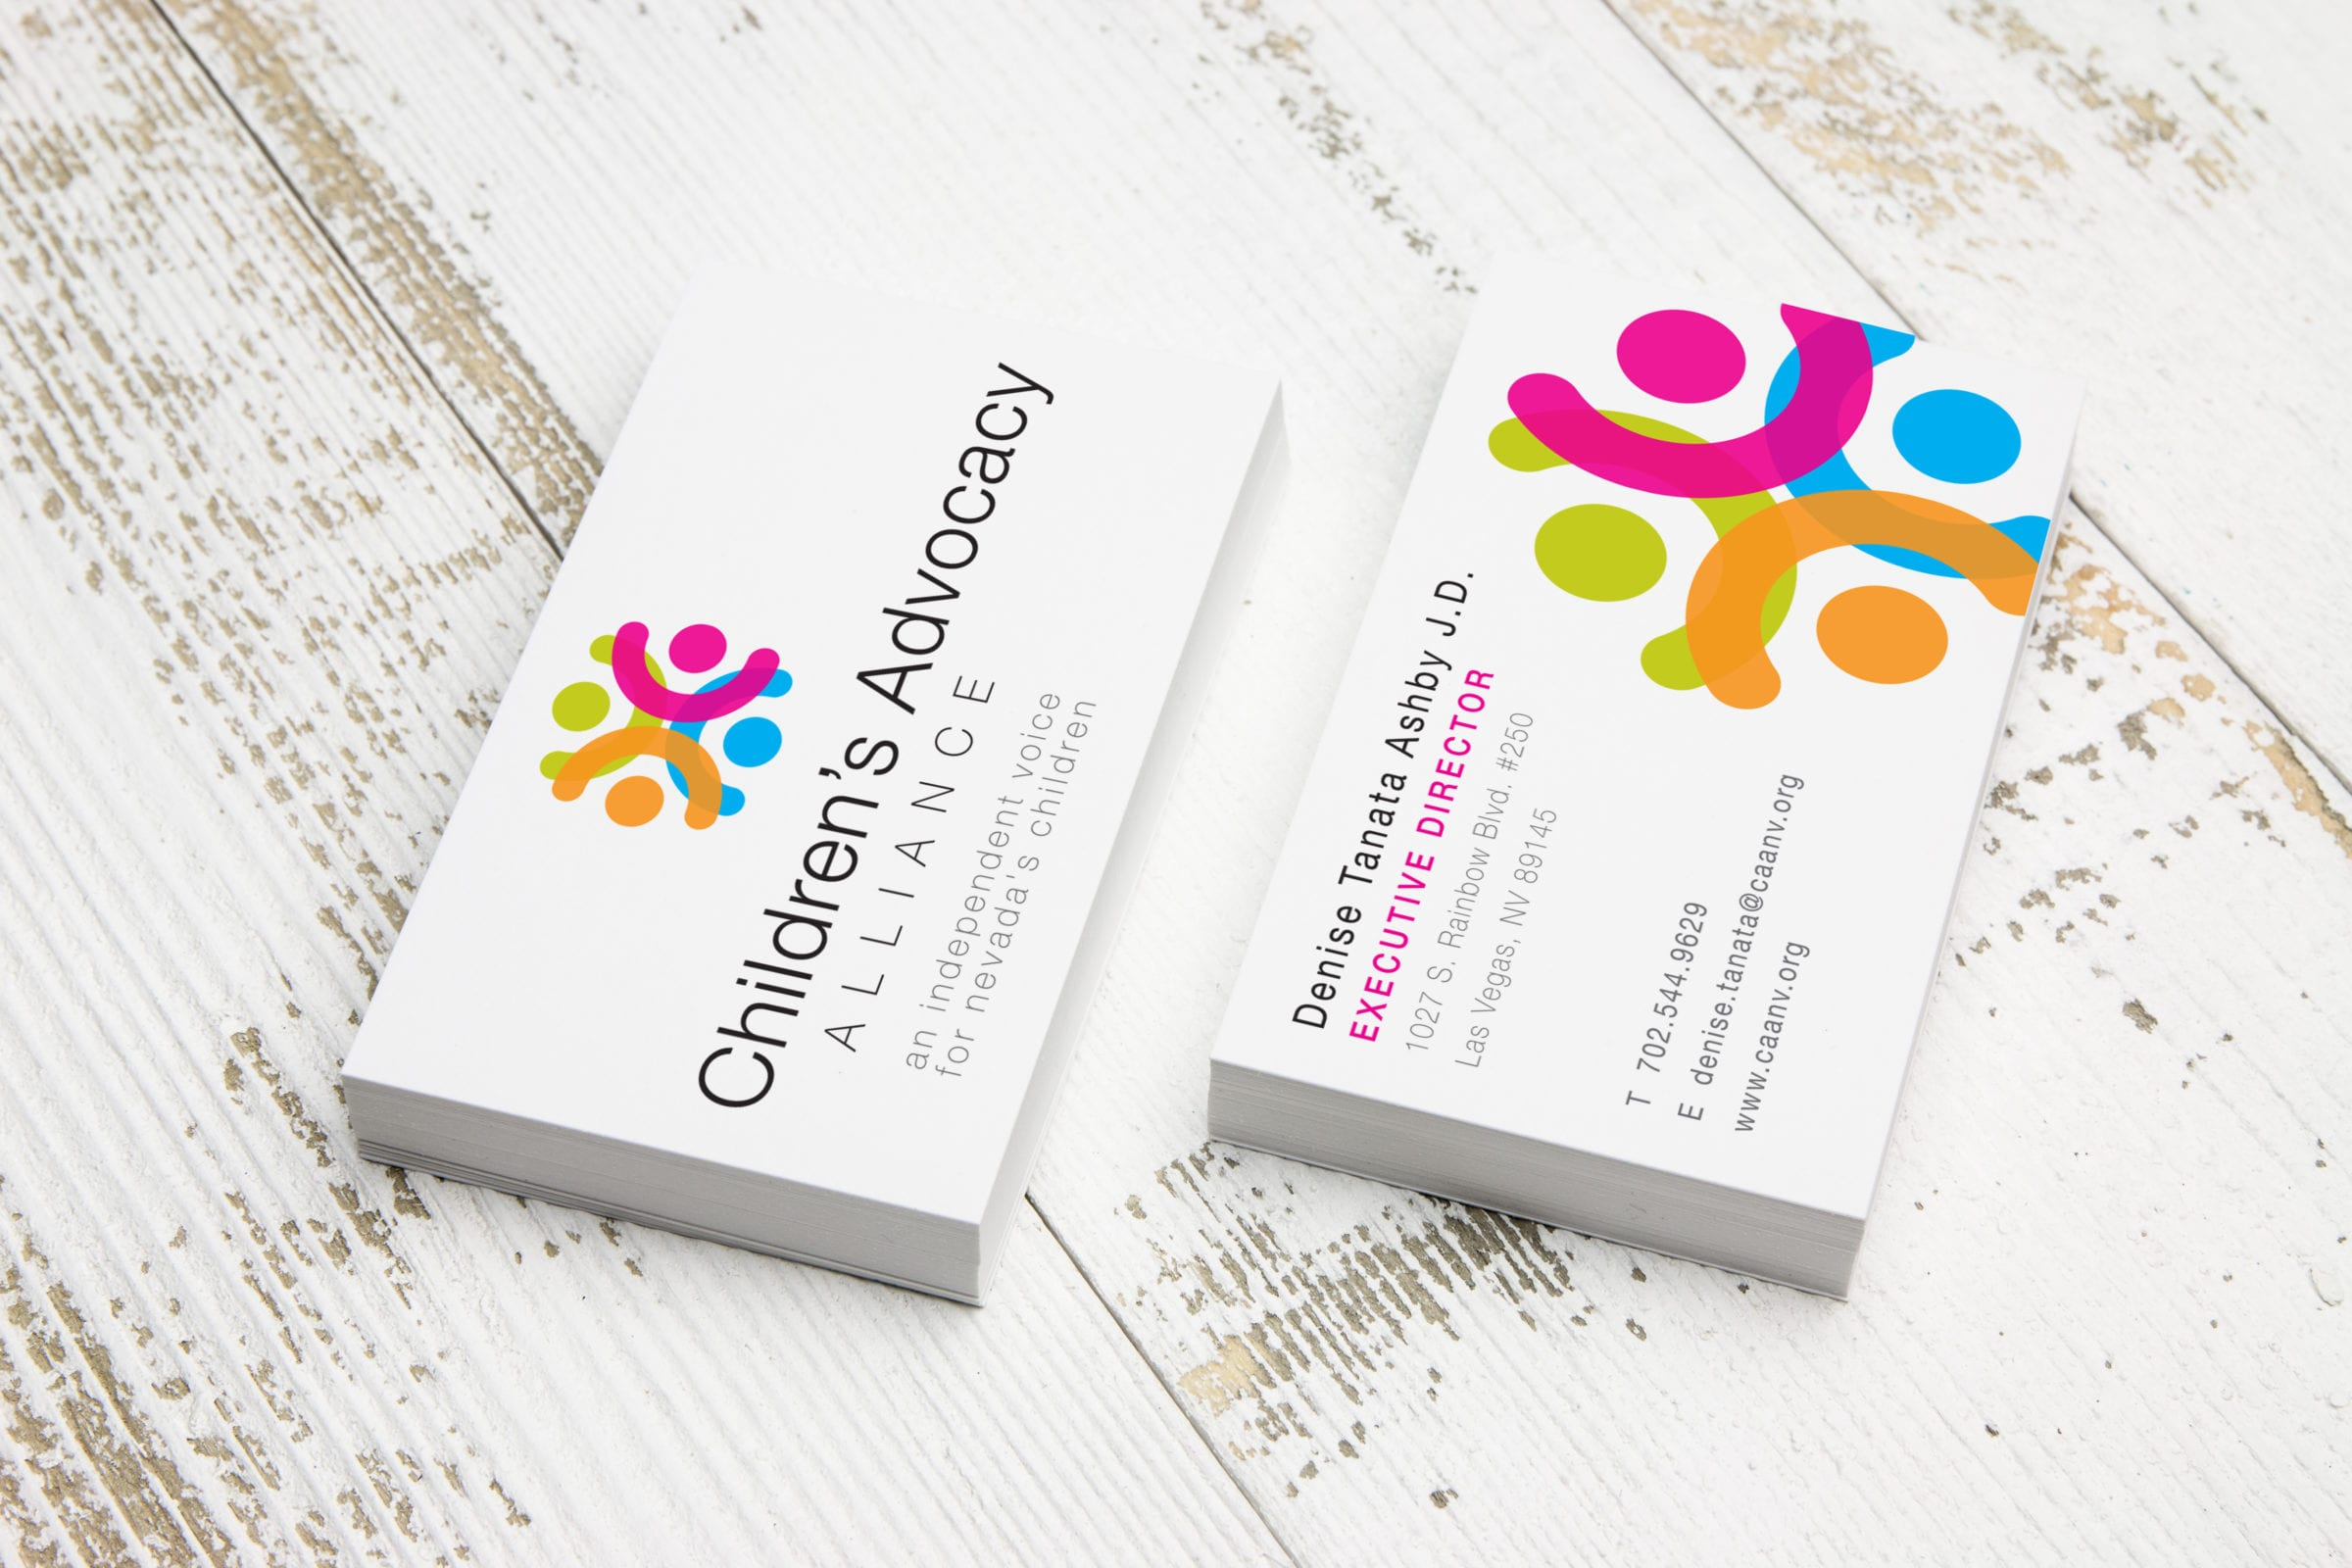 Children's Advocacy Alliance business cards